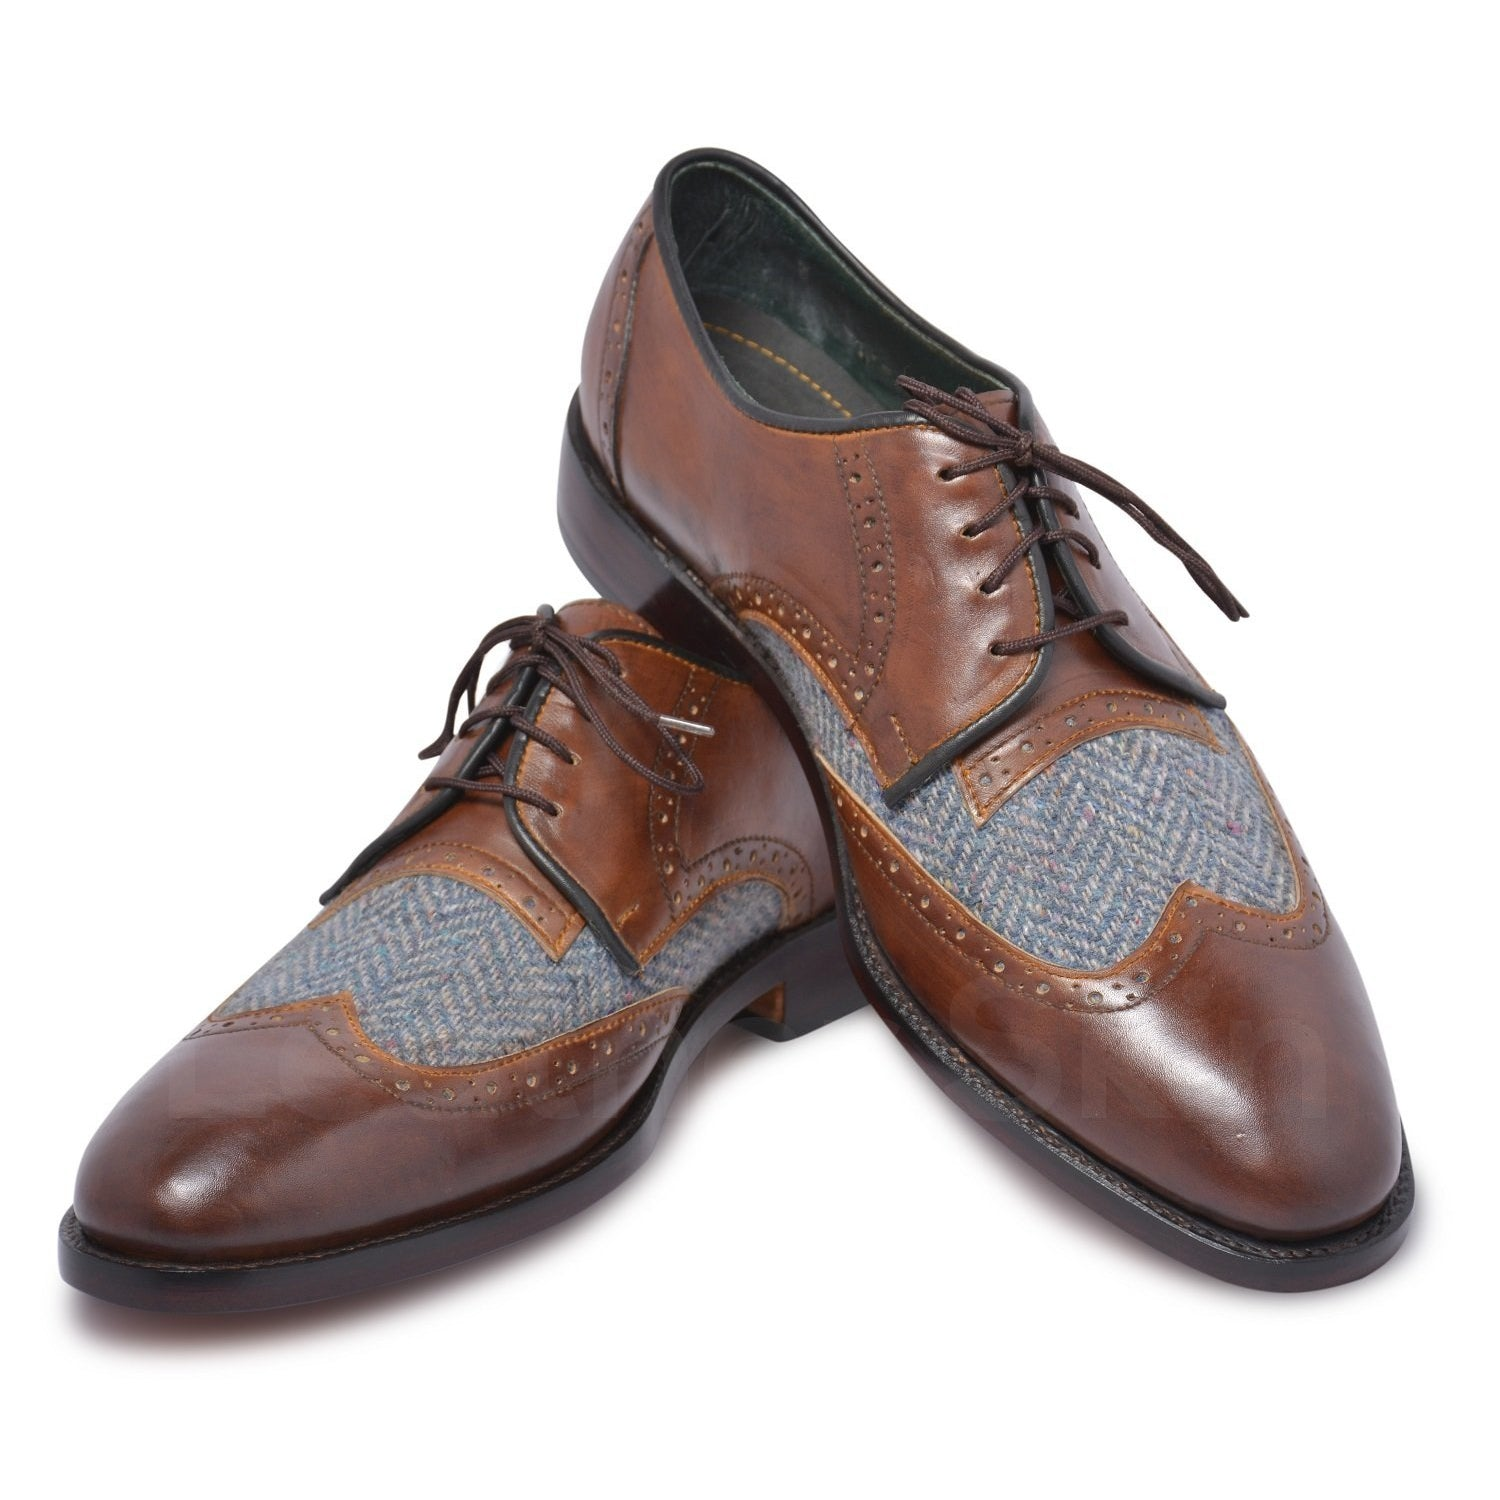 Men Brown Wingtip Derby Leather Shoes with Fabric Herringbone Vamp